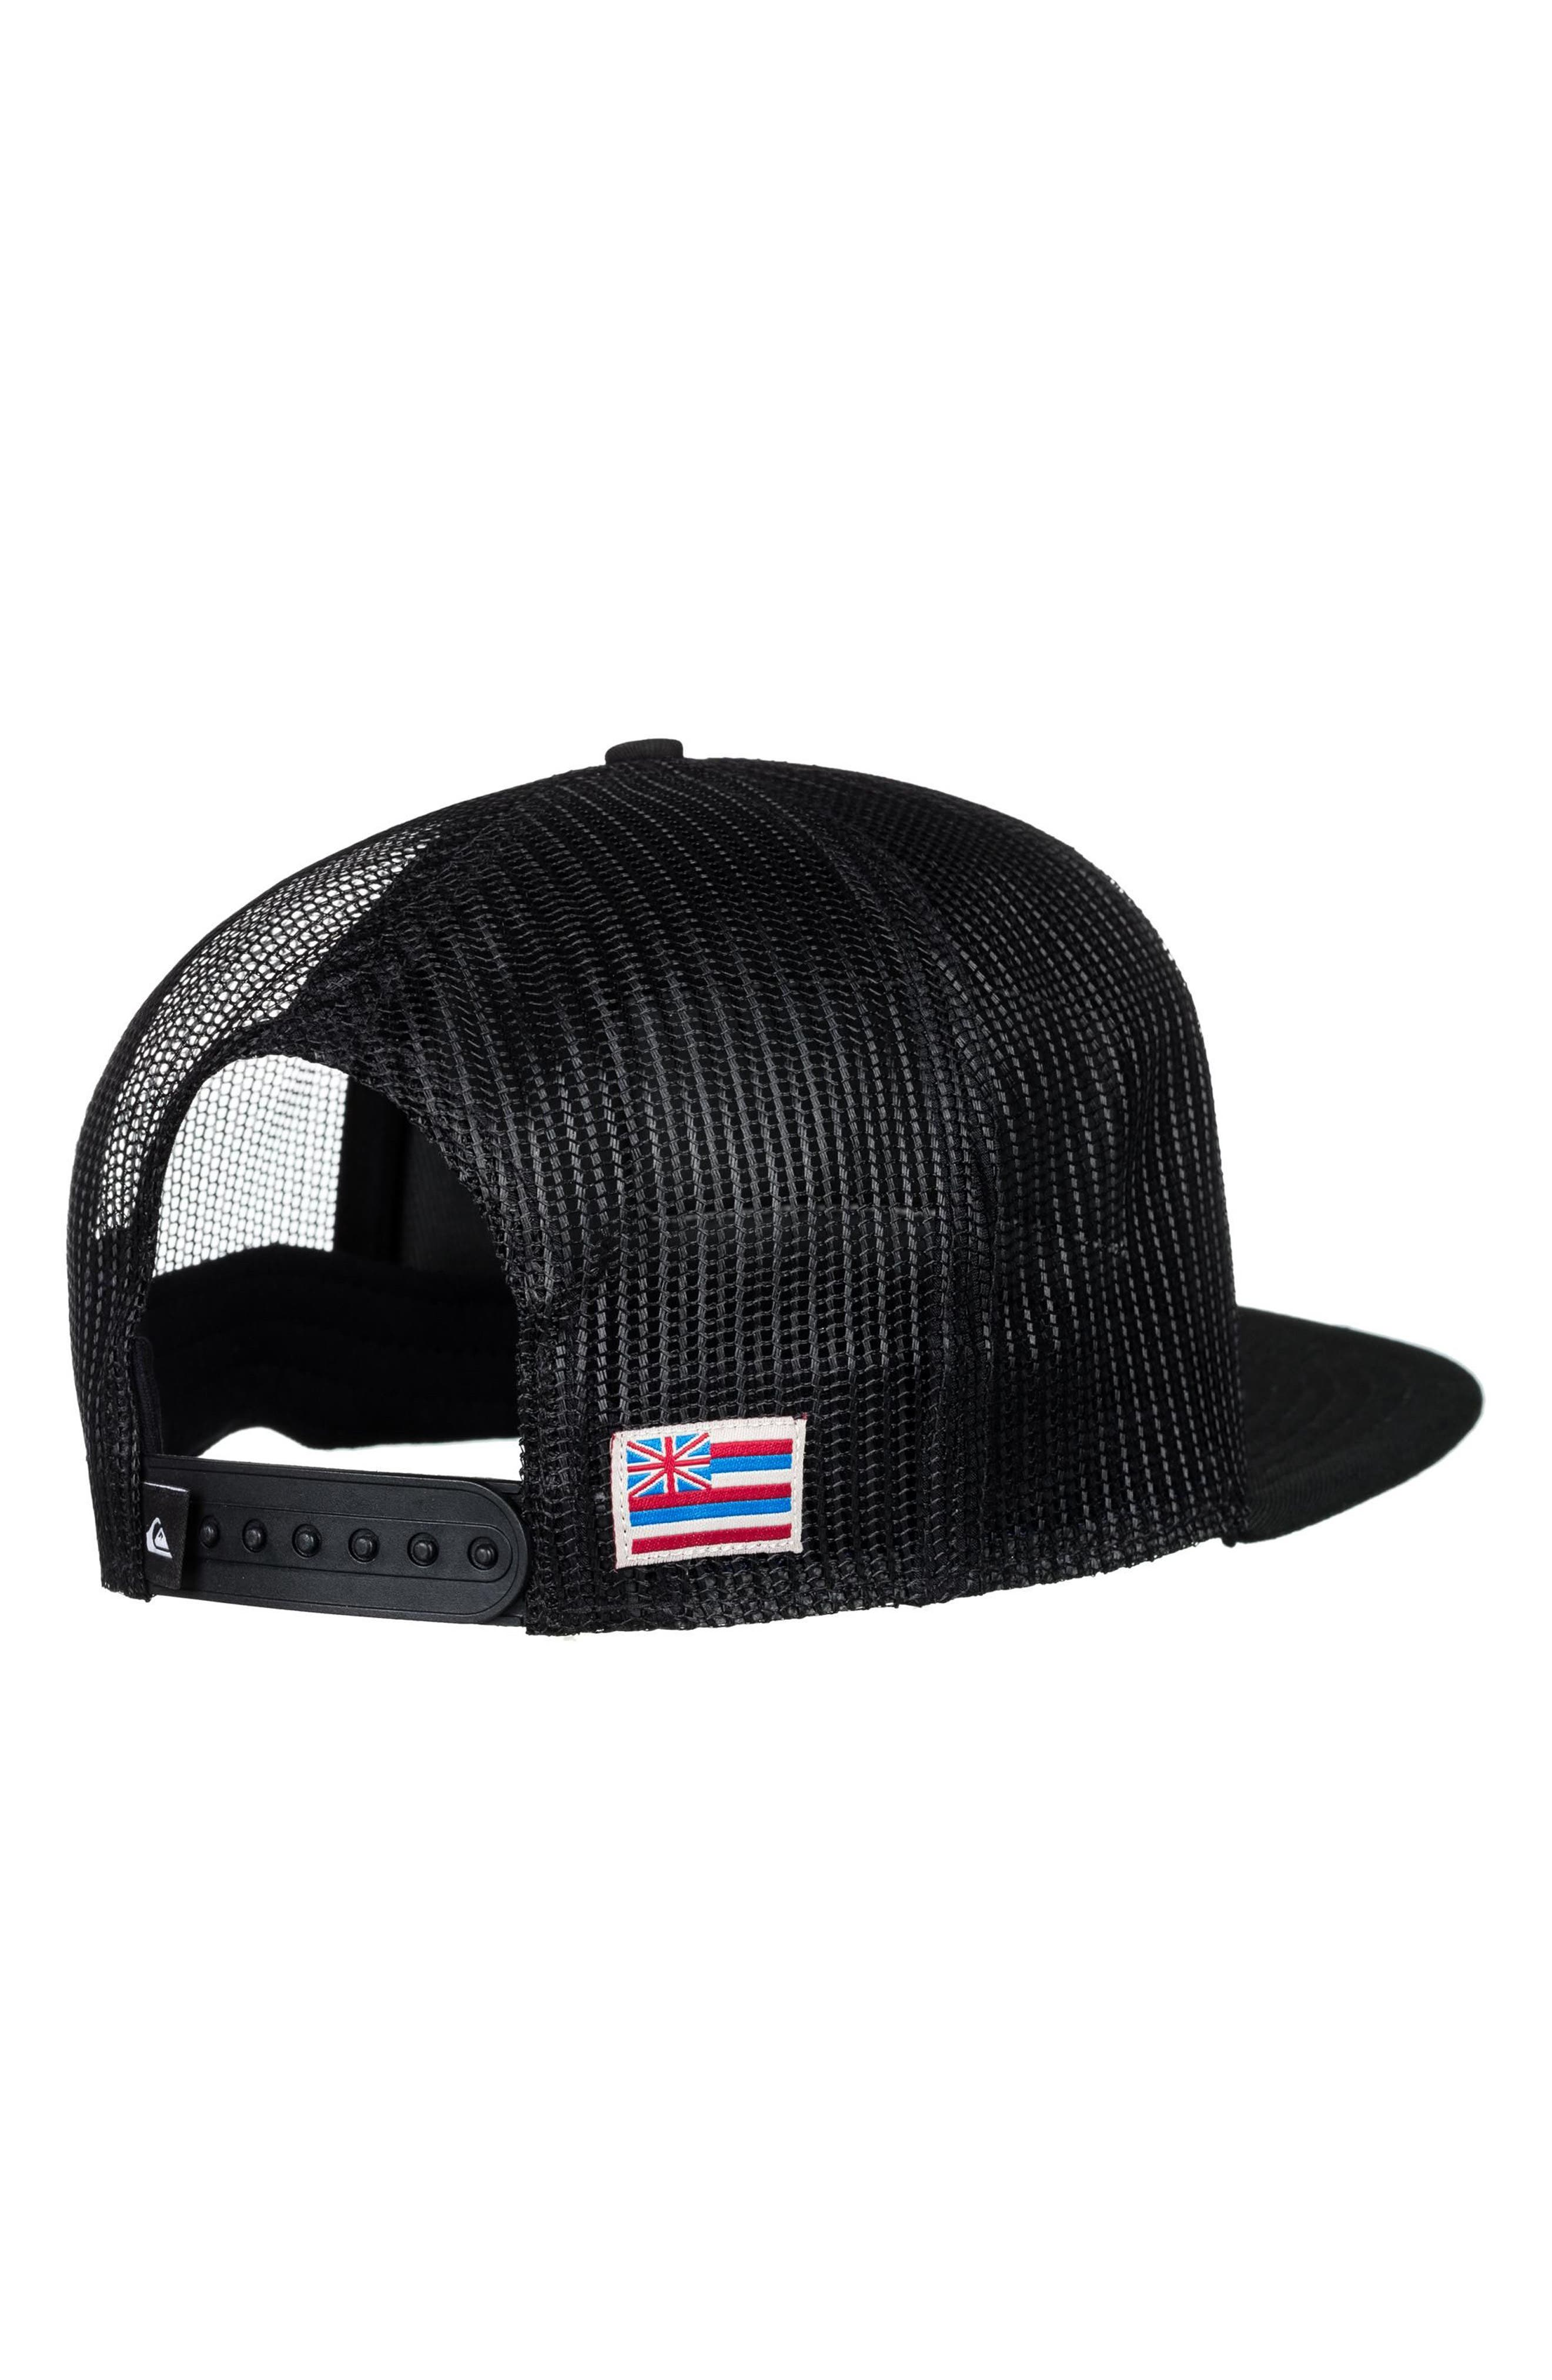 Hawaii Bonzer Trucker Hat,                             Alternate thumbnail 2, color,                             Black